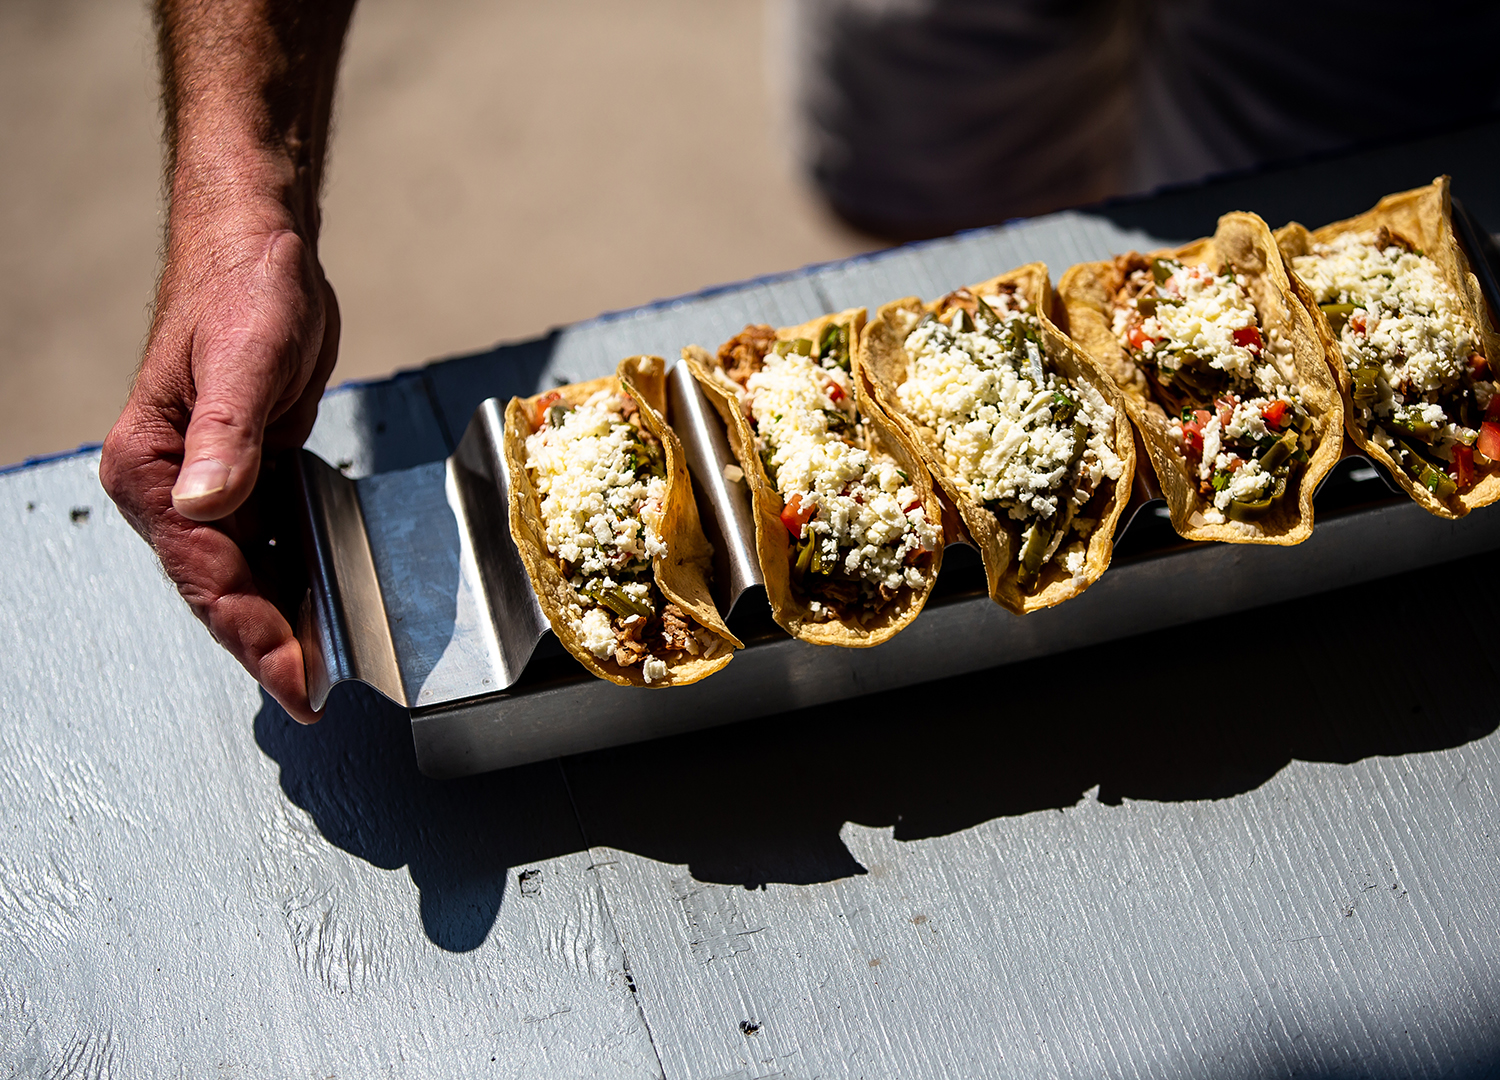 The street tacos by Phil Caplis head for judging in the savory category the Golden Abe's Fantastic Fair Food competition at the Lincoln Stage at the Illinois State Fair, Friday, Aug. 10, 2018, in Springfield, Ill. [Justin L. Fowler/The State Journal-Register]